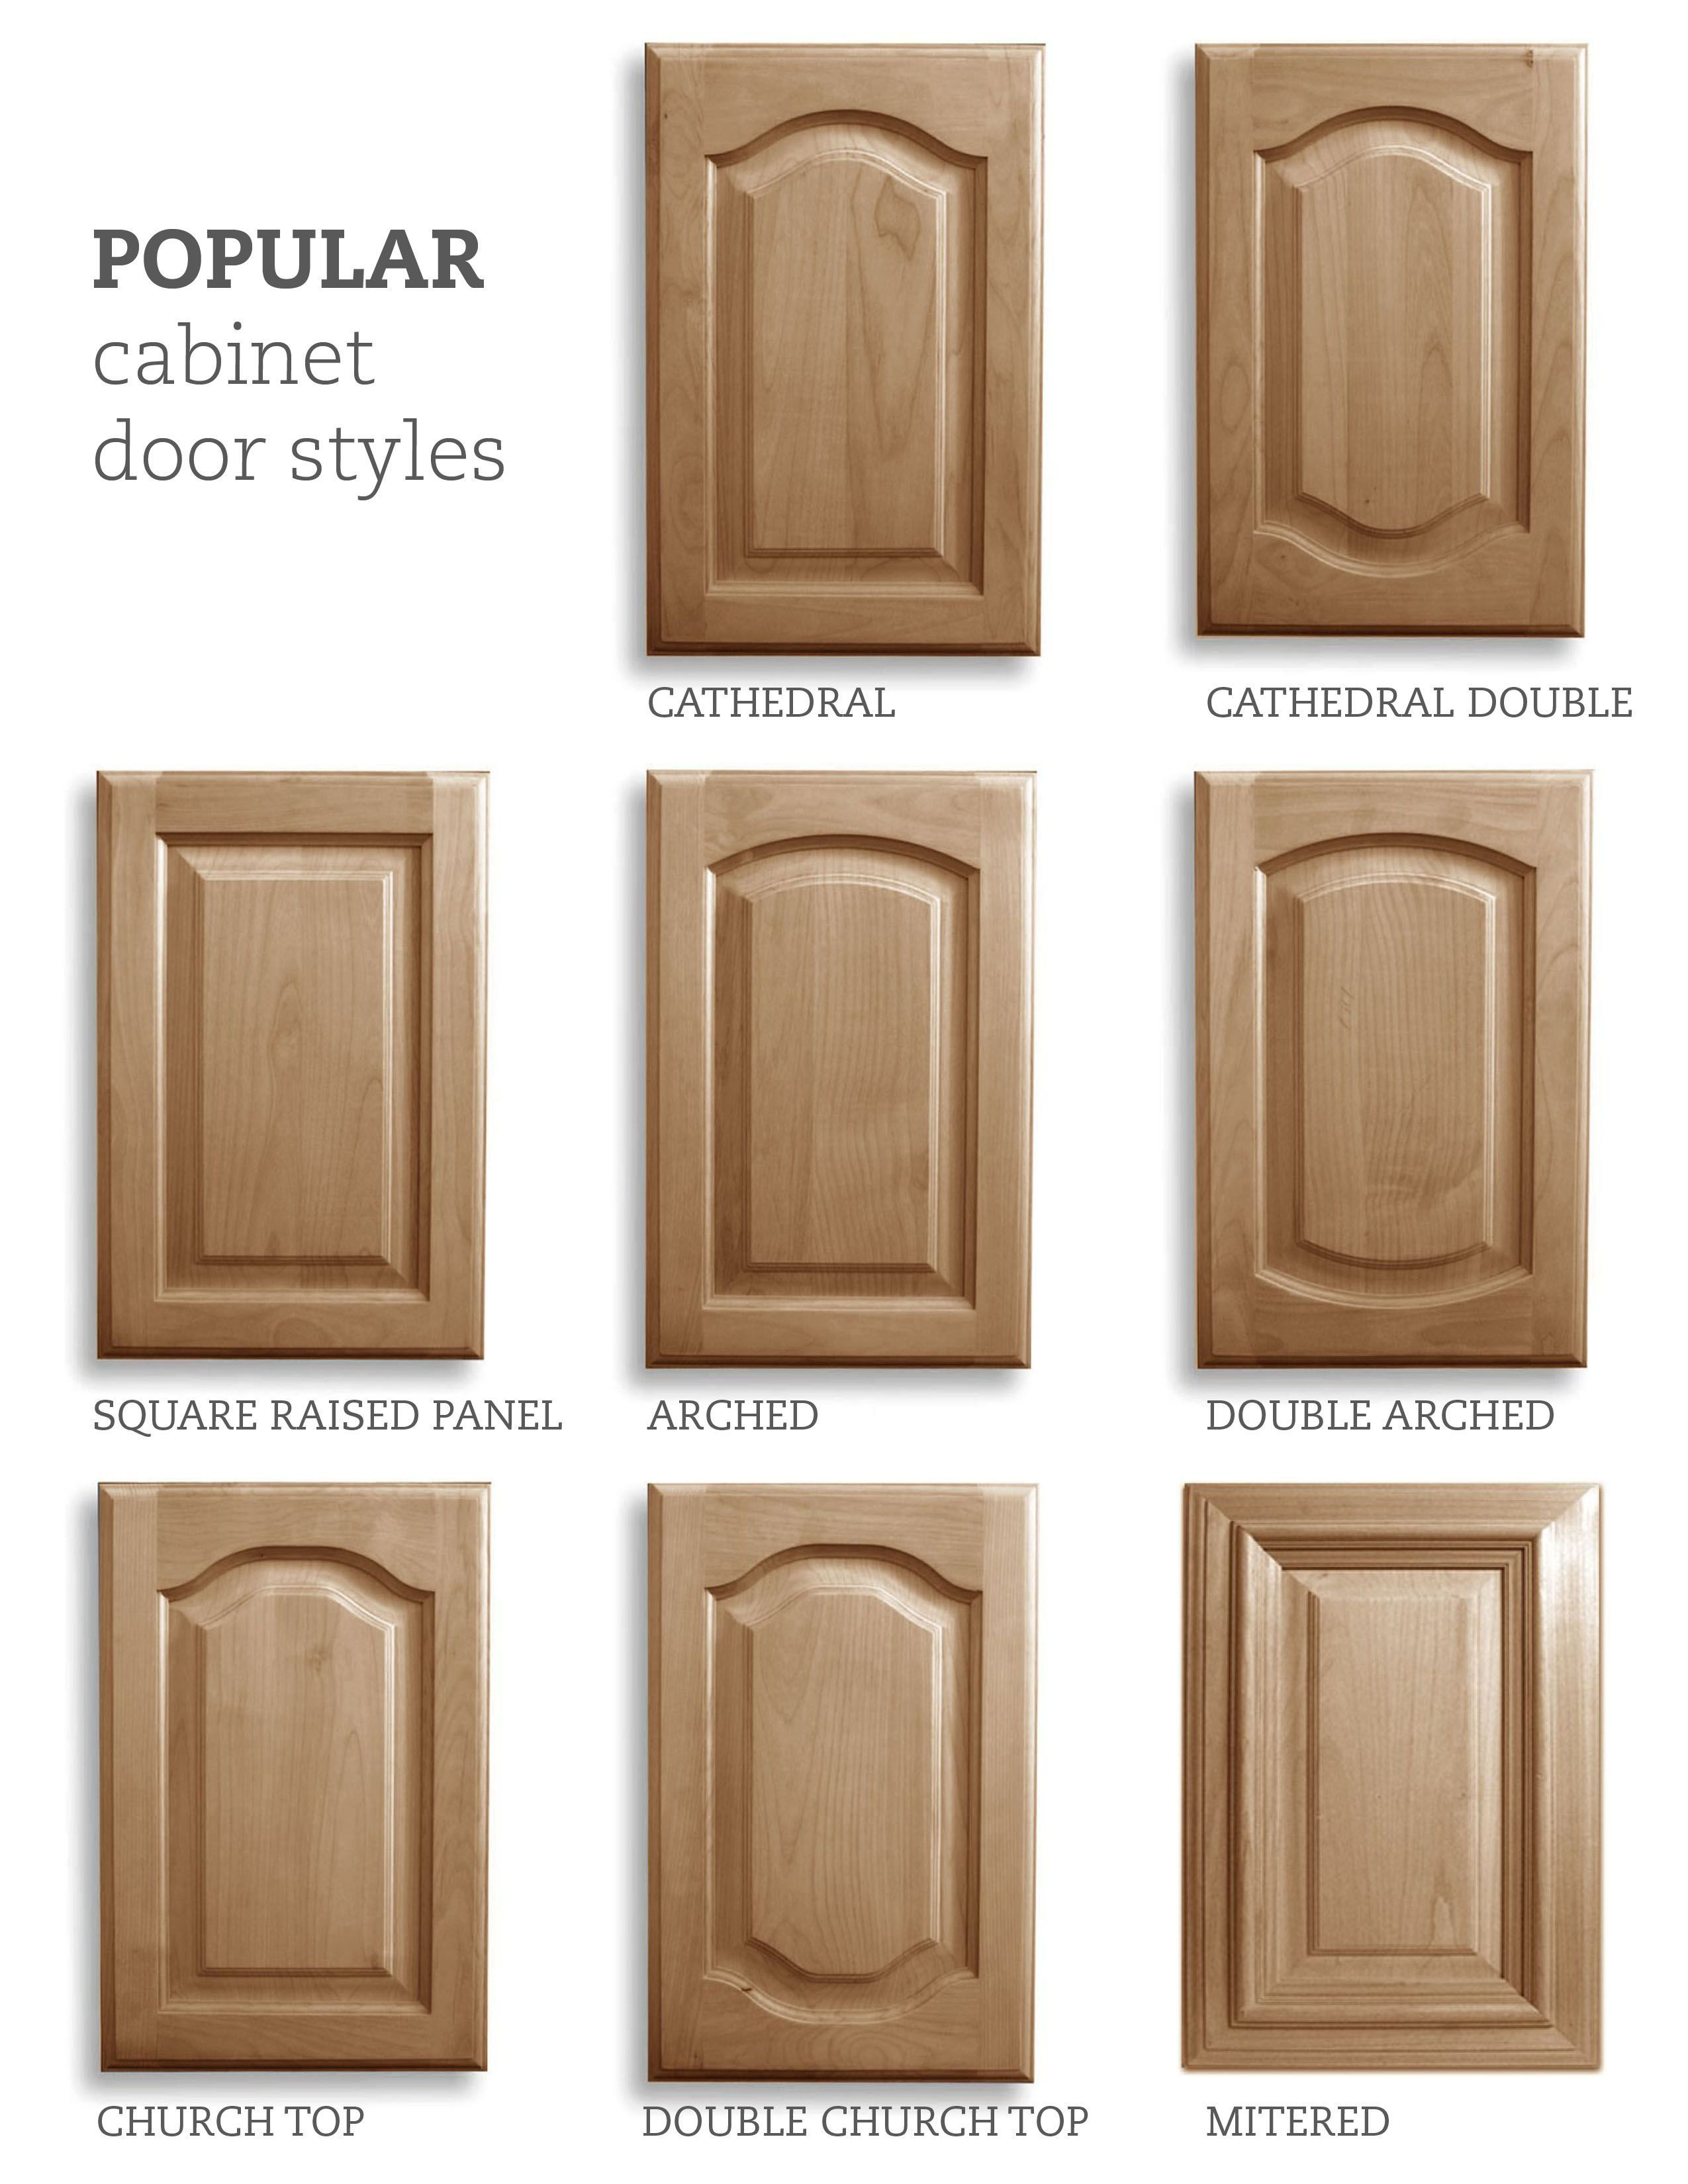 Styles Of Kitchen Cabinet Doors 2020 Kitchen Cabinet Door Styles Cabinet Door Styles Cabinet Doors